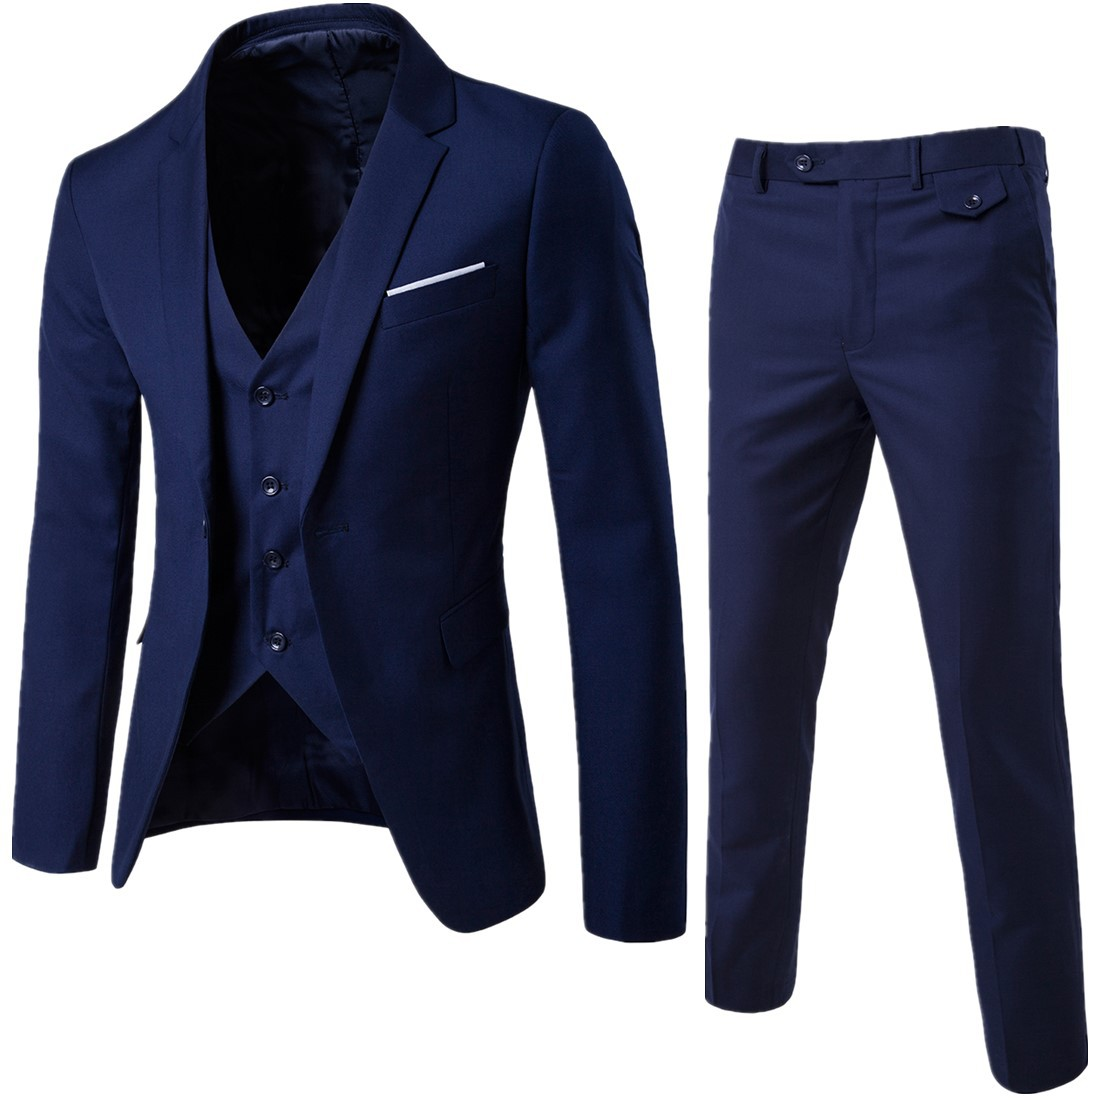 2019 Spring And Autumn New Style Men Casual Suit Three-piece Set Small Suit Slim Fit Youth Men's Wear Wedding Formal Dress